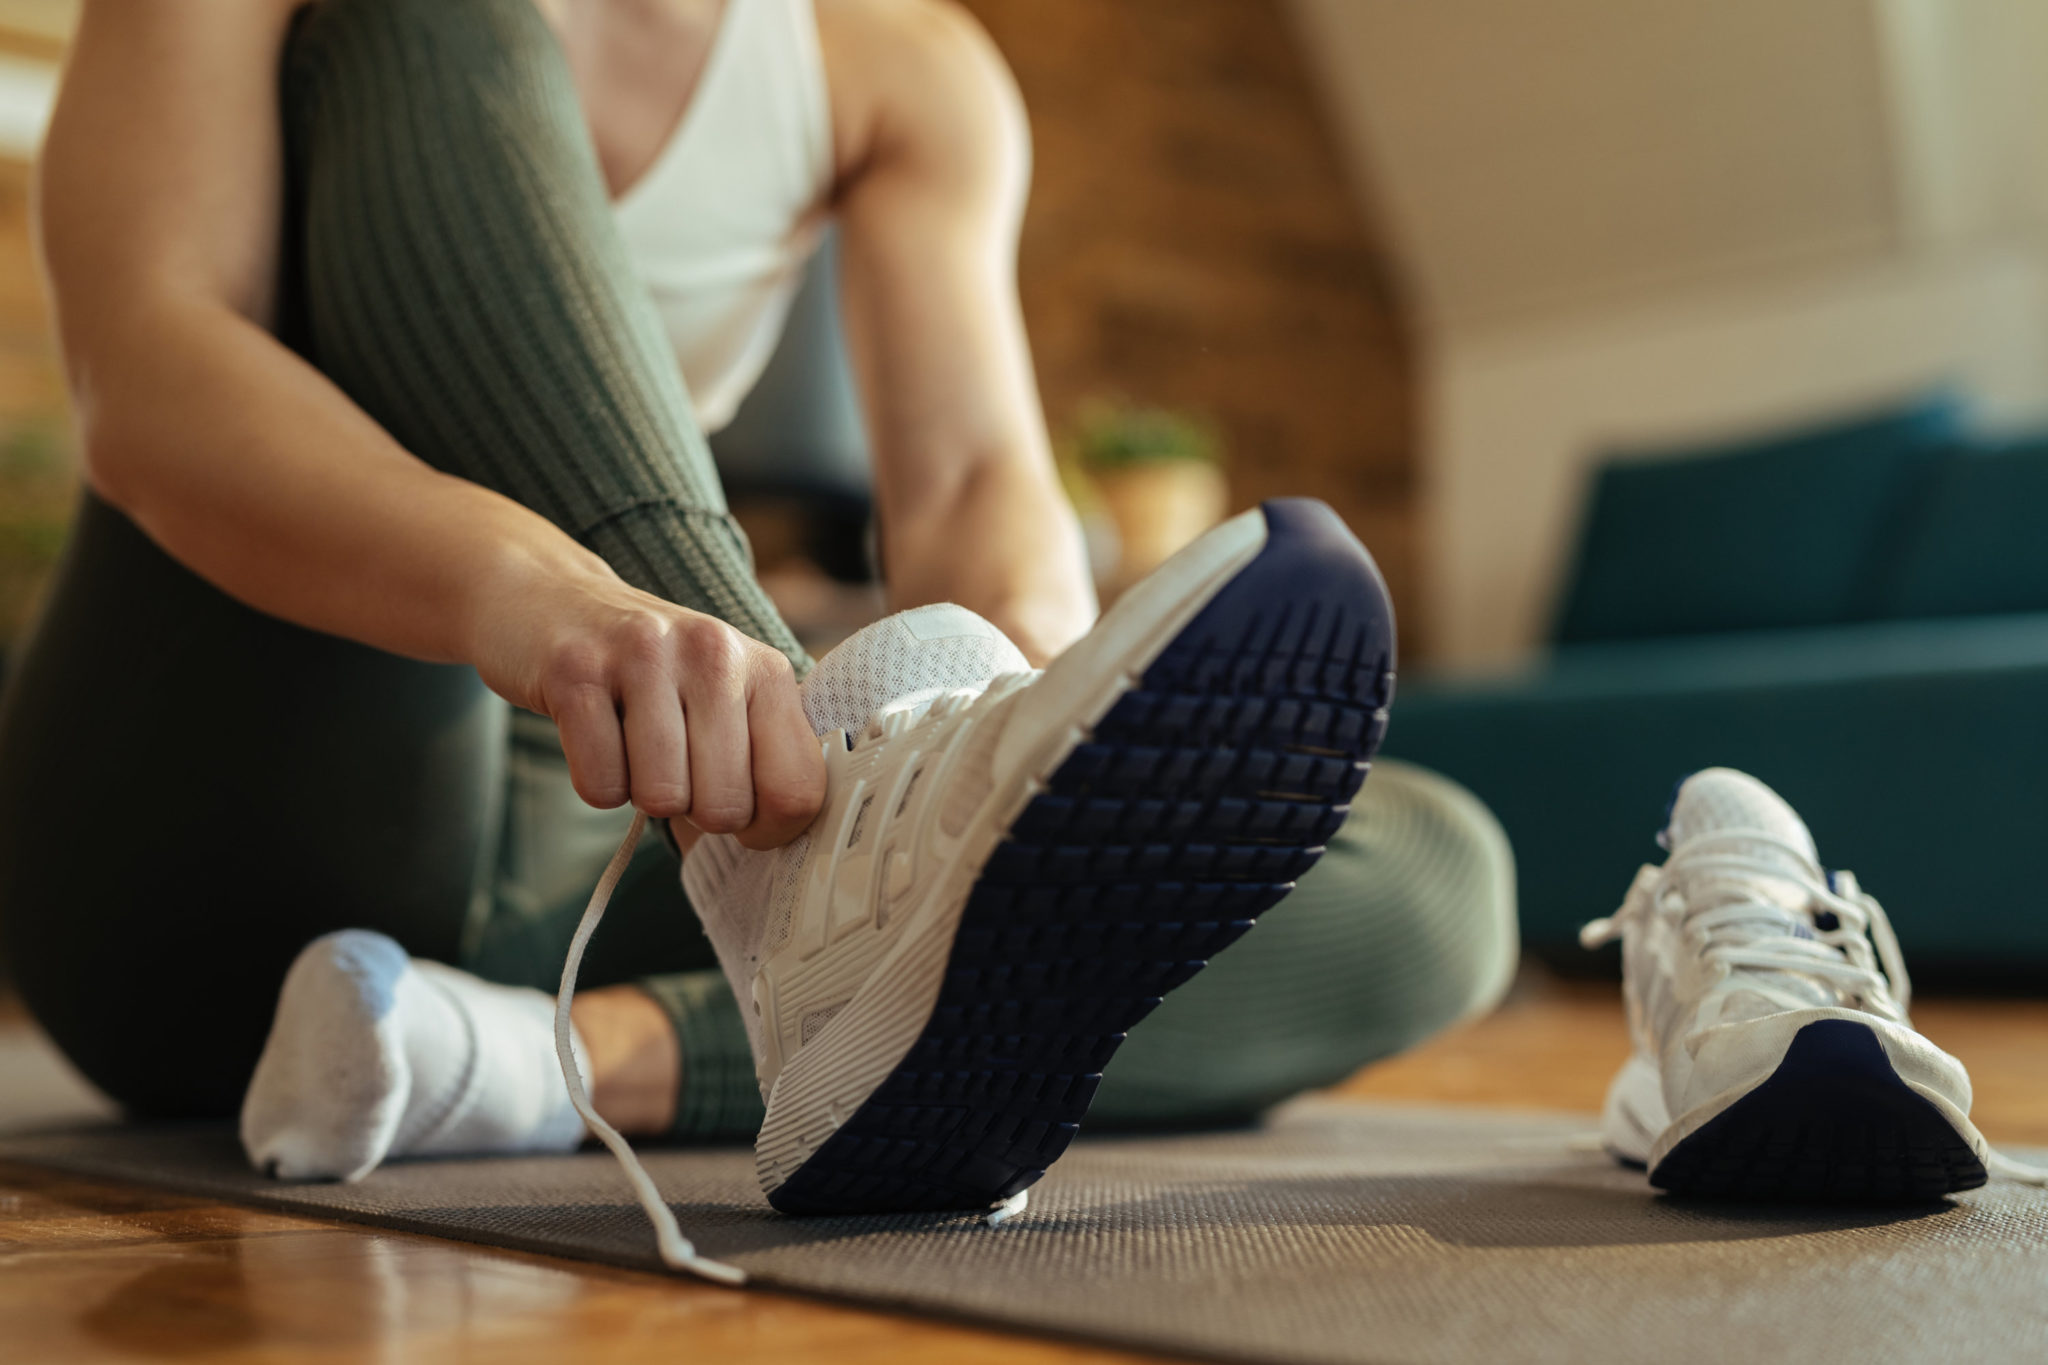 5-Home-Fitness-Hacks-That-Make-Your-Body-Feel-the-Best